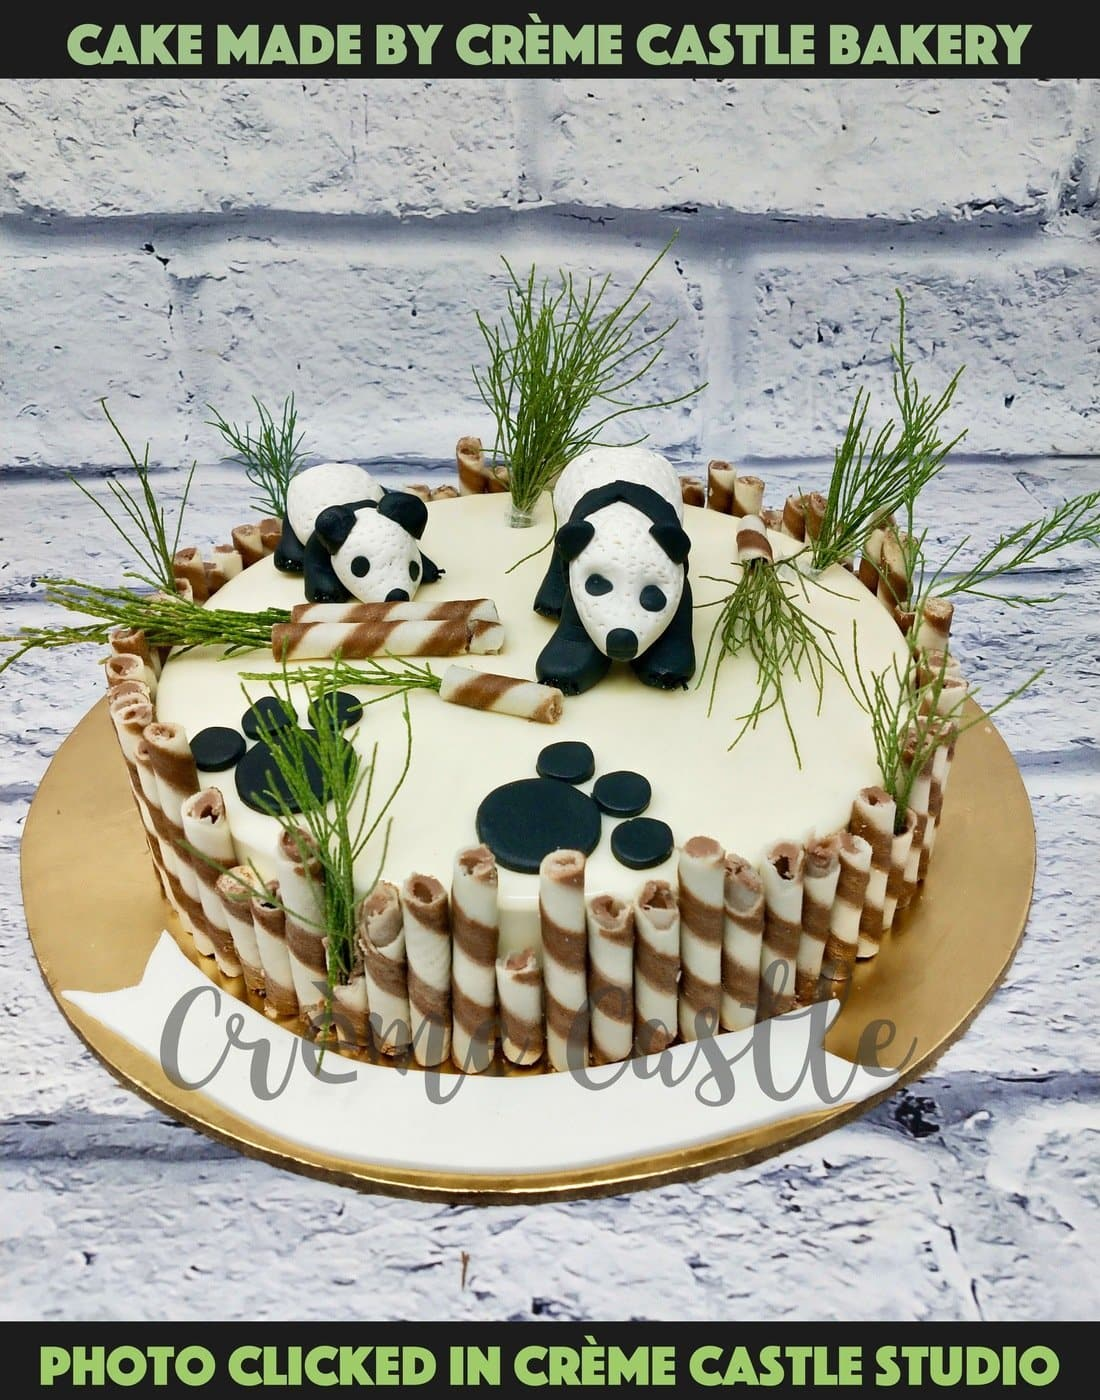 A white theme cake in a forest theme surrounded by chocolate cigars as boundary and bushes and pandas playing in between. How cute is that!